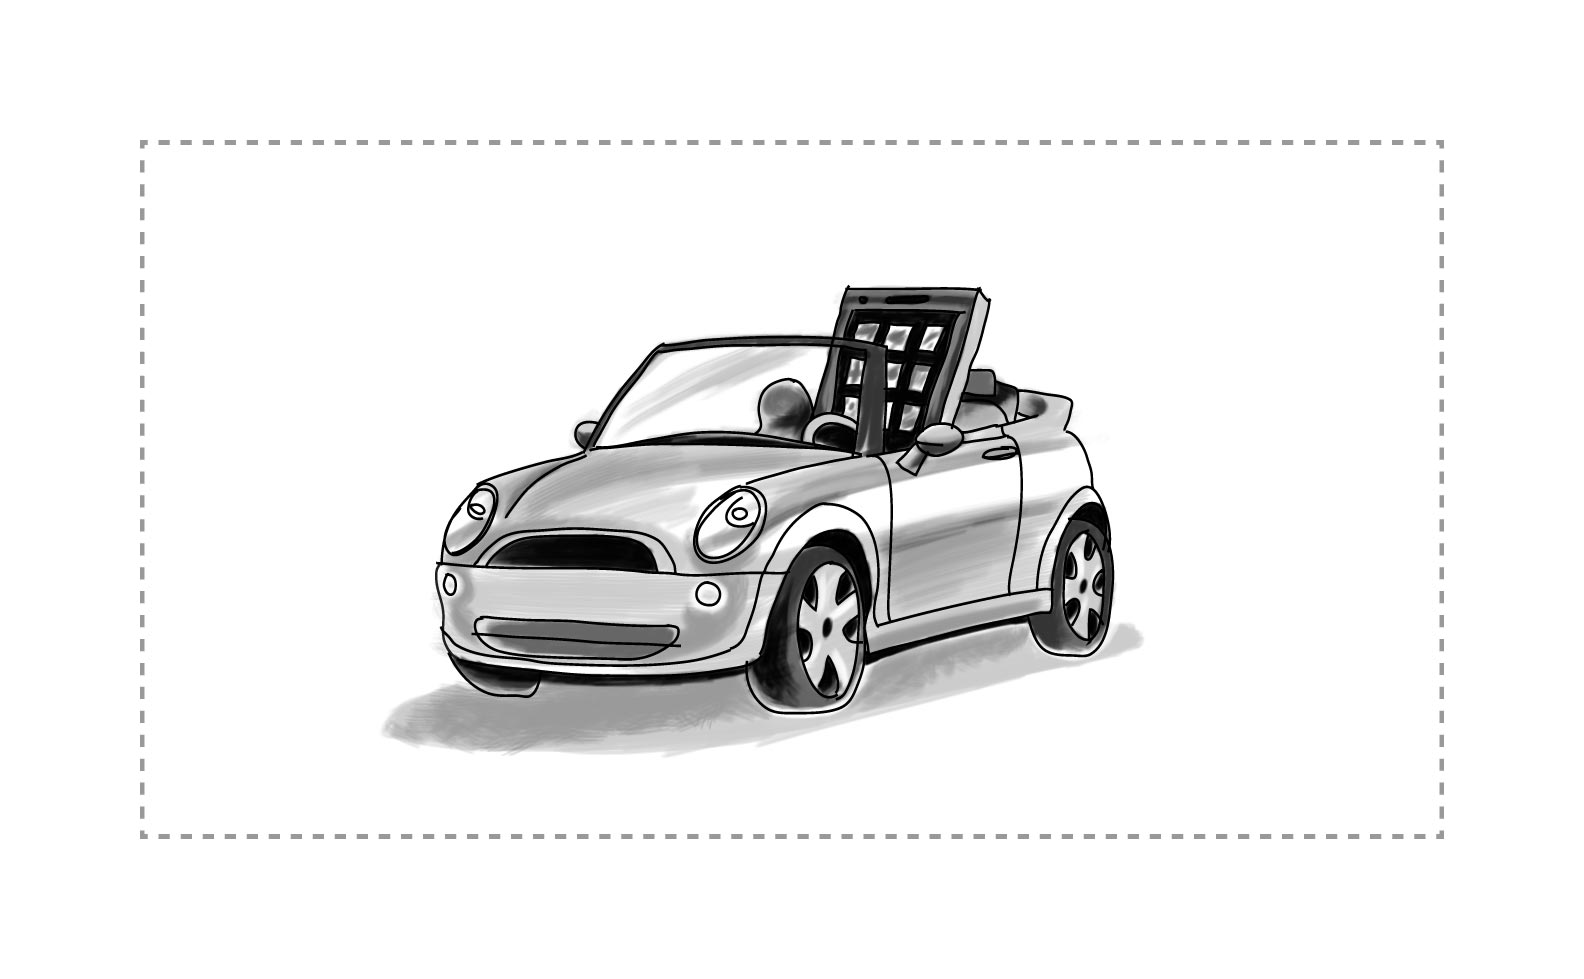 An image of a mobile device 'driving' a car.